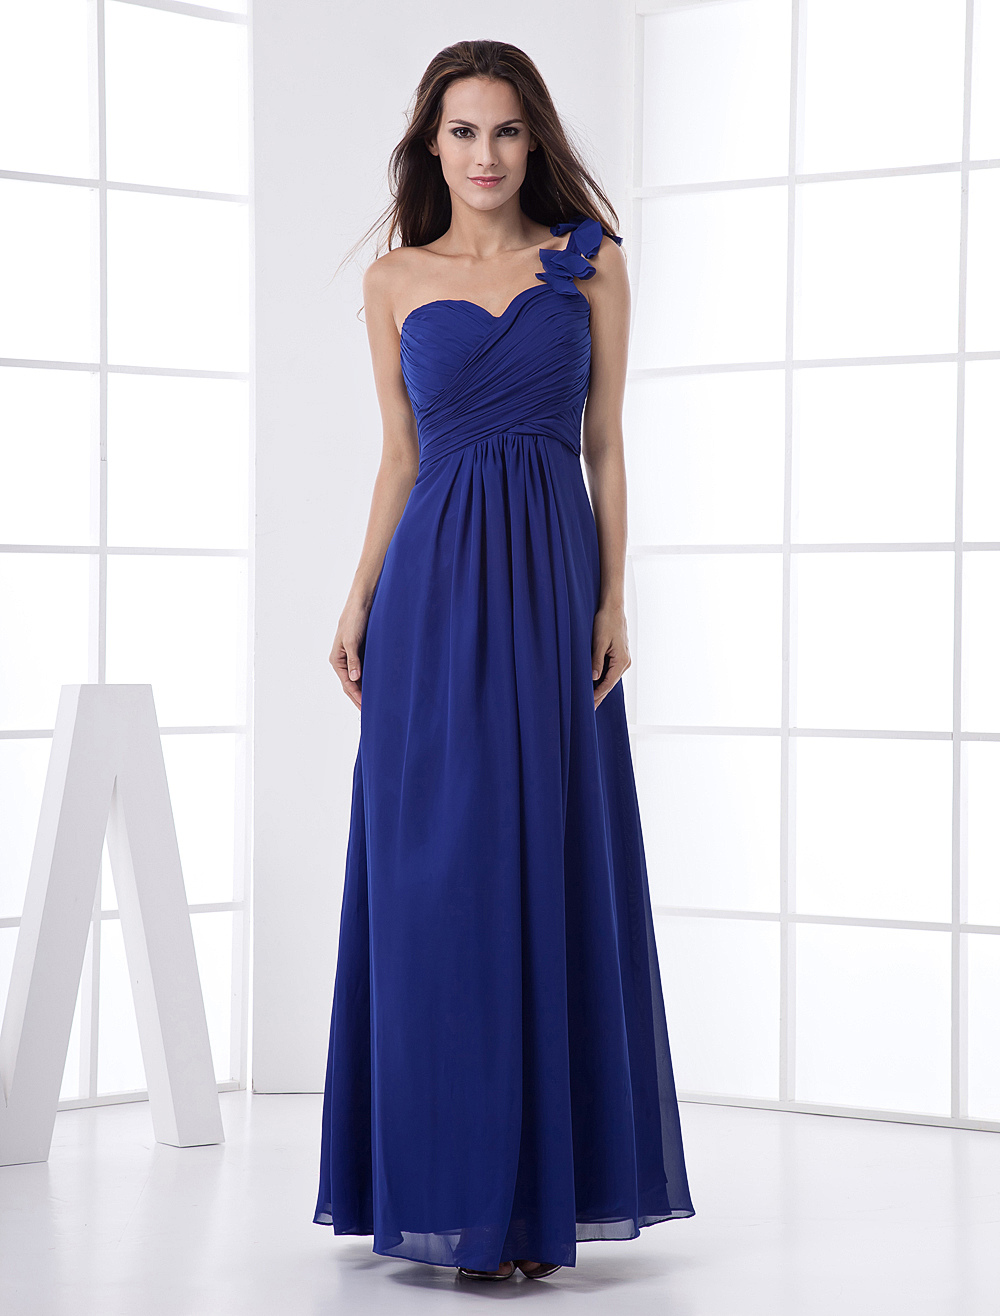 Elegant Royal Blue Floor Length One Shoulder Bridesmaid Dress